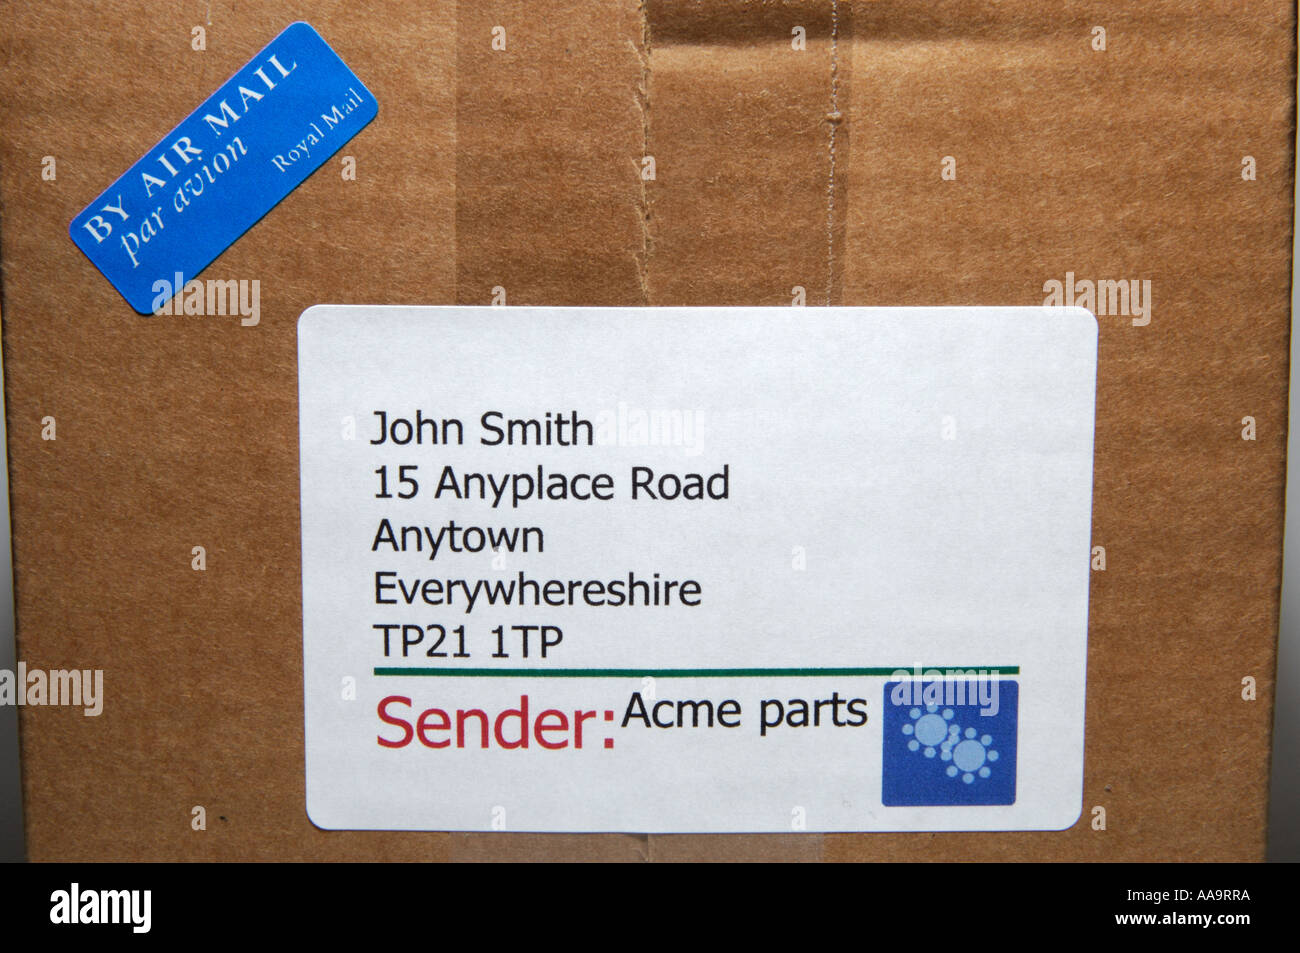 Close Up Of Address Label And Air Mail Label On A Cardboard Package